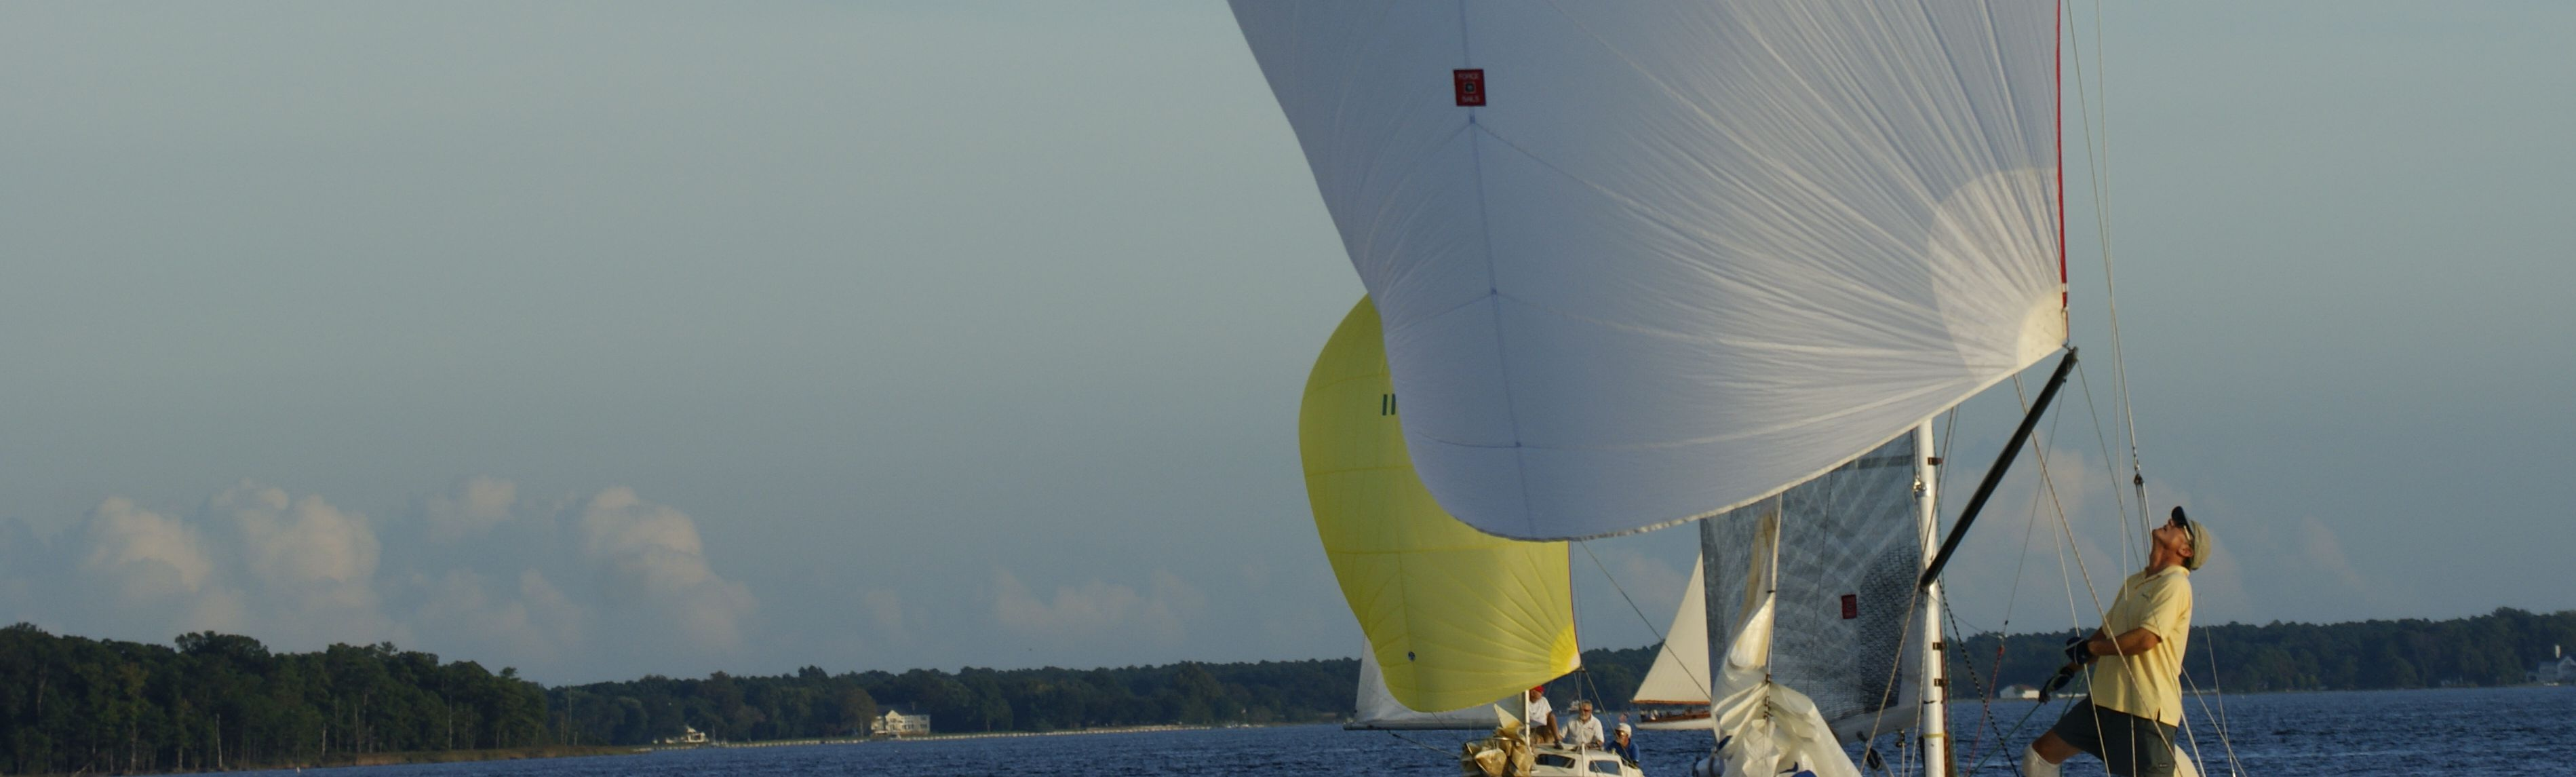 win with custom racing sails by Force 10 Sails